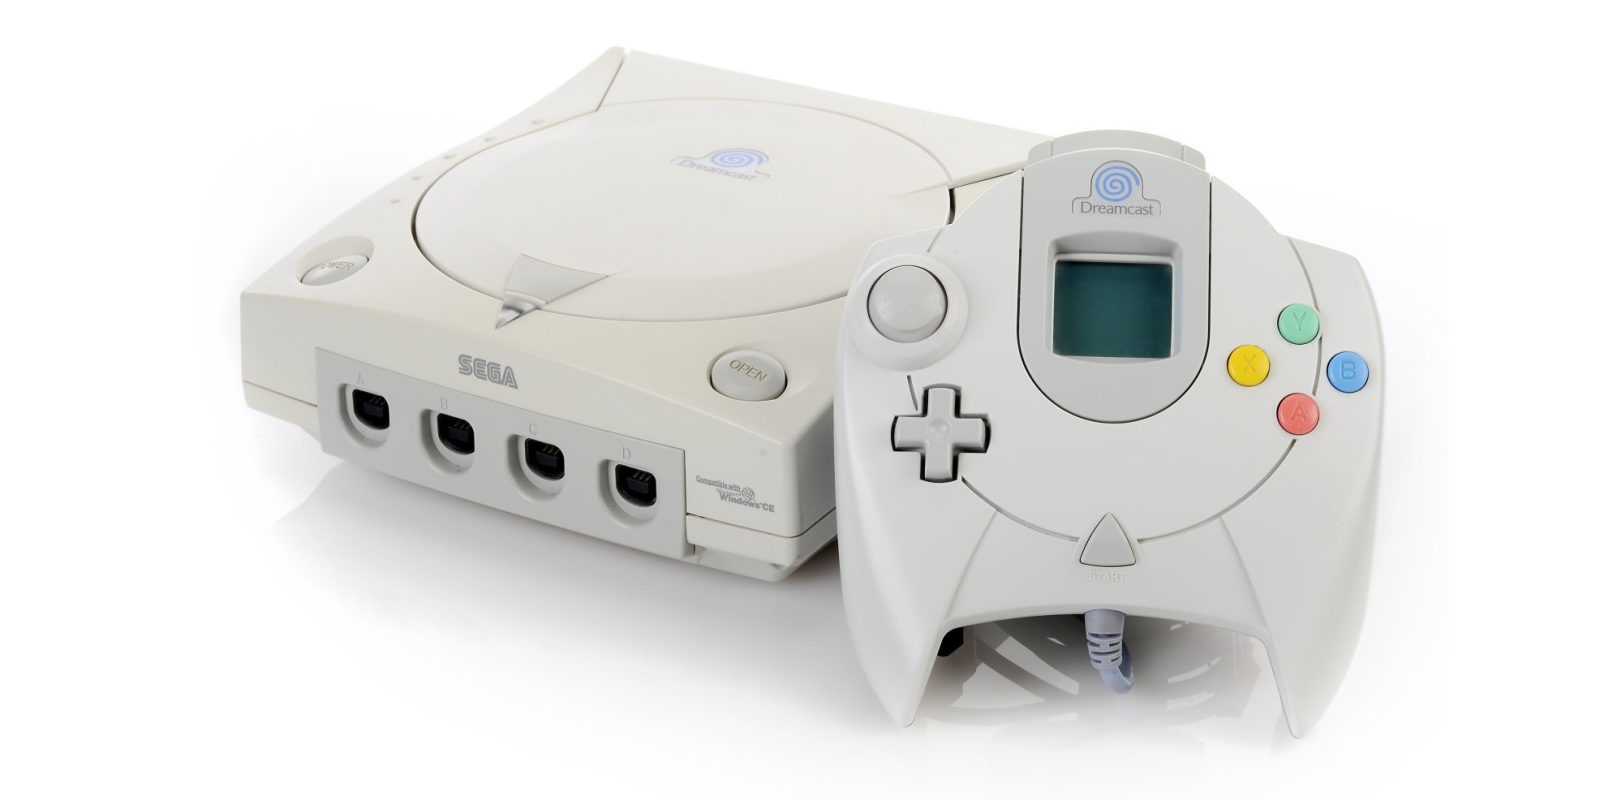 SEGA Dreamcast: 20 years later, it's time for a retro remake